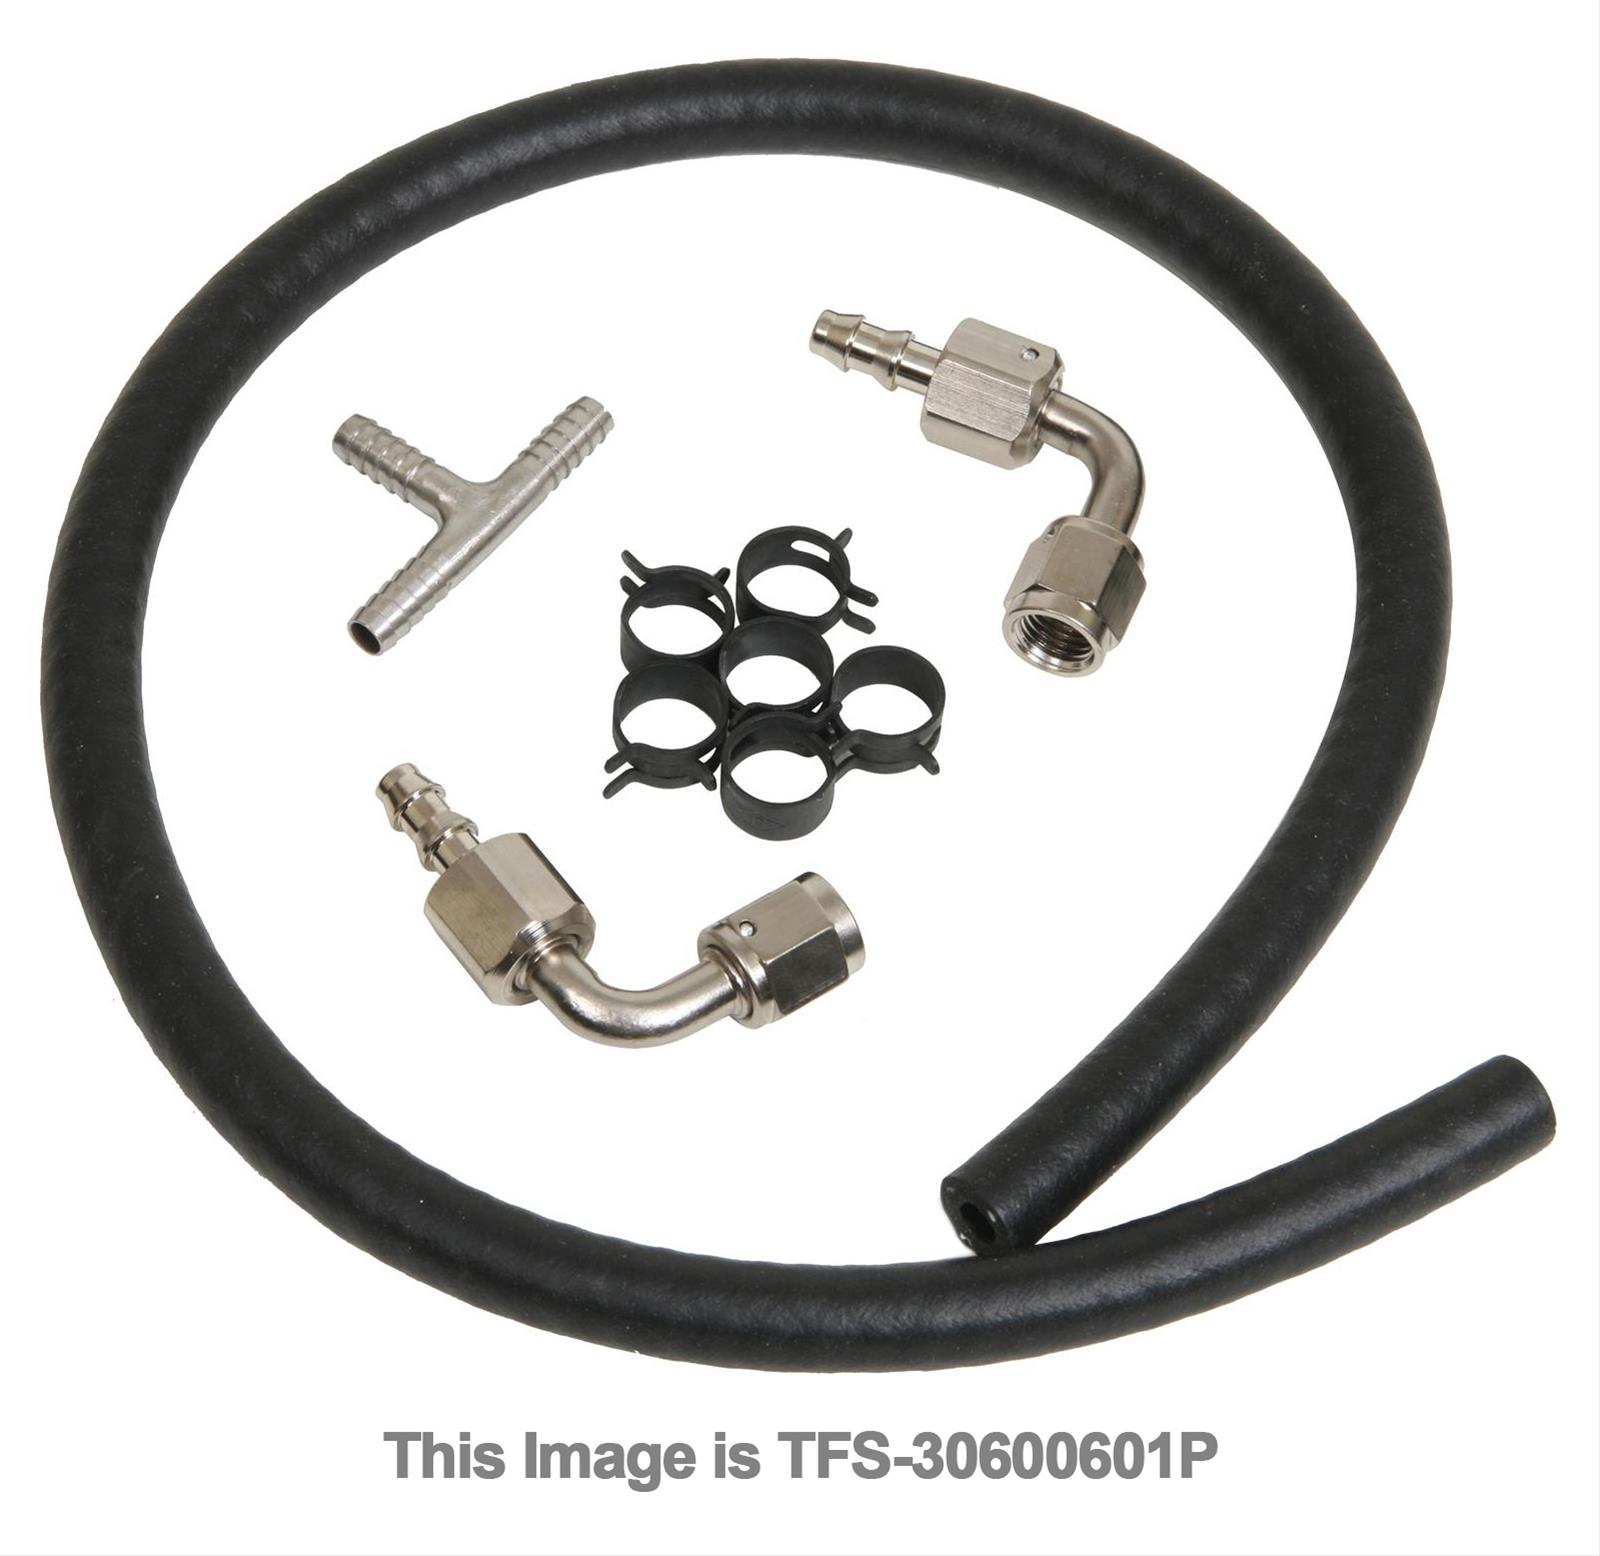 Finish Line Free Shipping Trick >> Trick Flow GM LS Engine Steam Line Front Plumbing Kit TFS ...